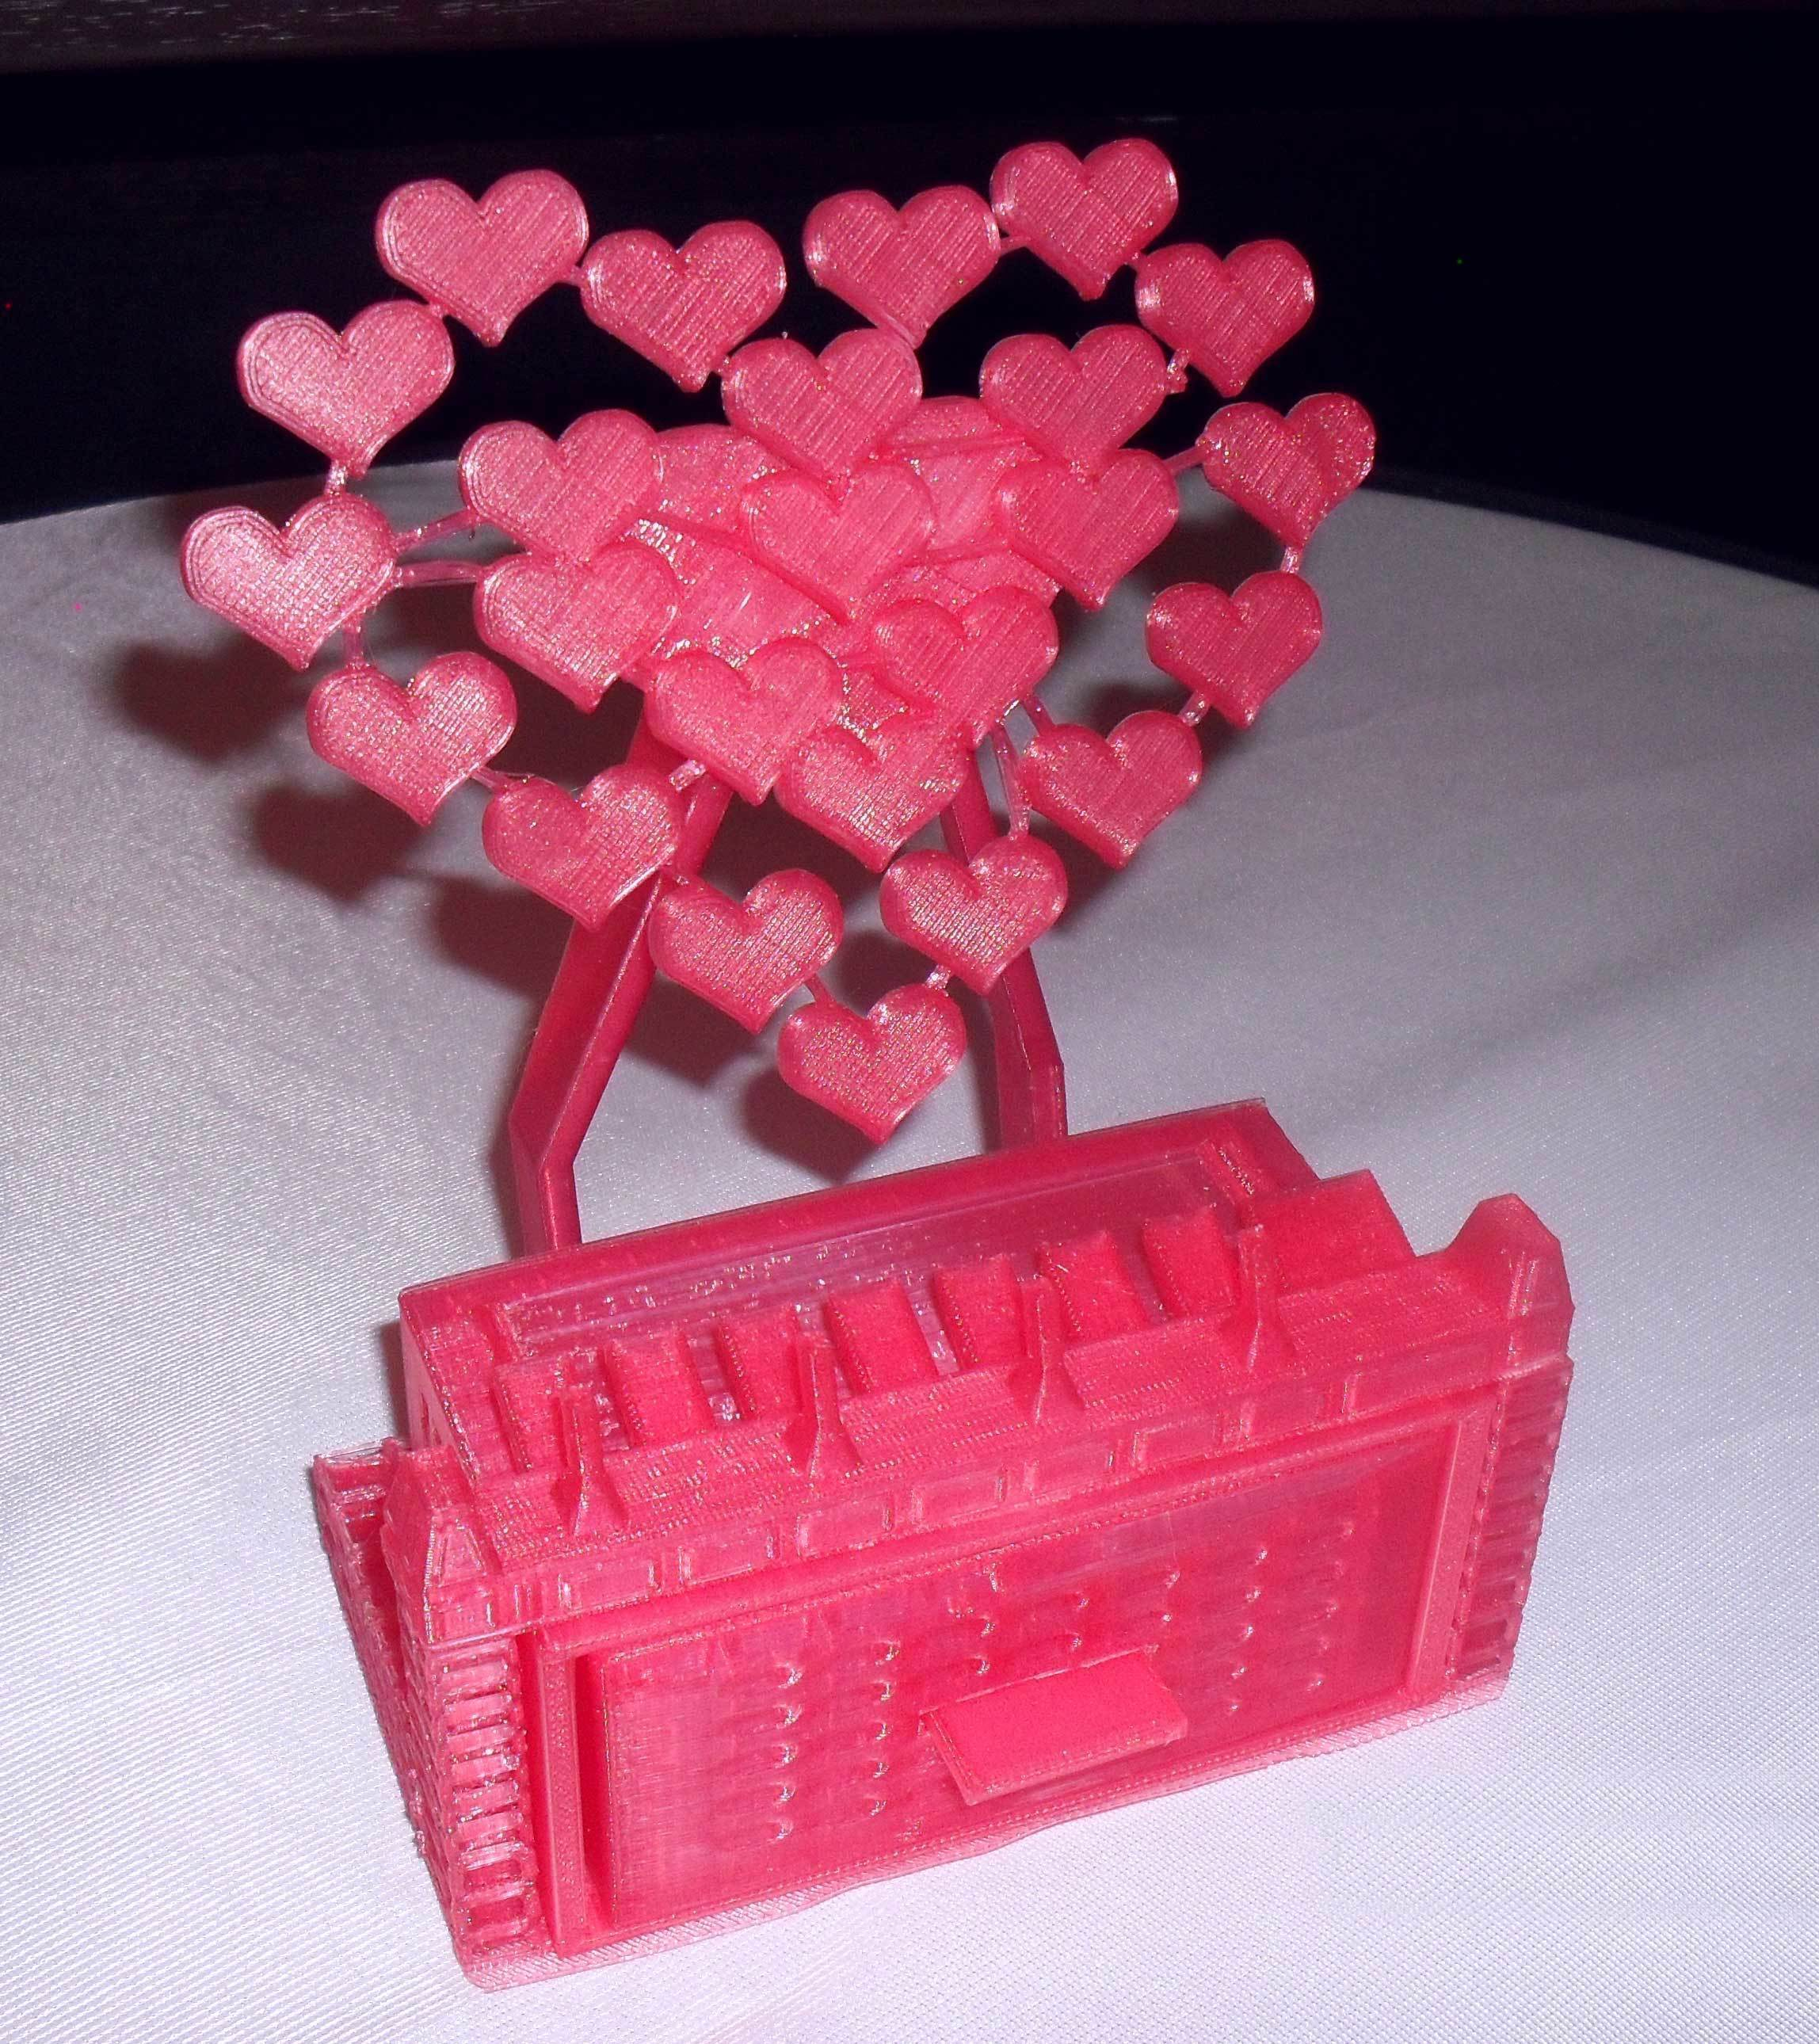 3D Printed Mobile phone stand/jewellery box by chris_rendall | Pinshape